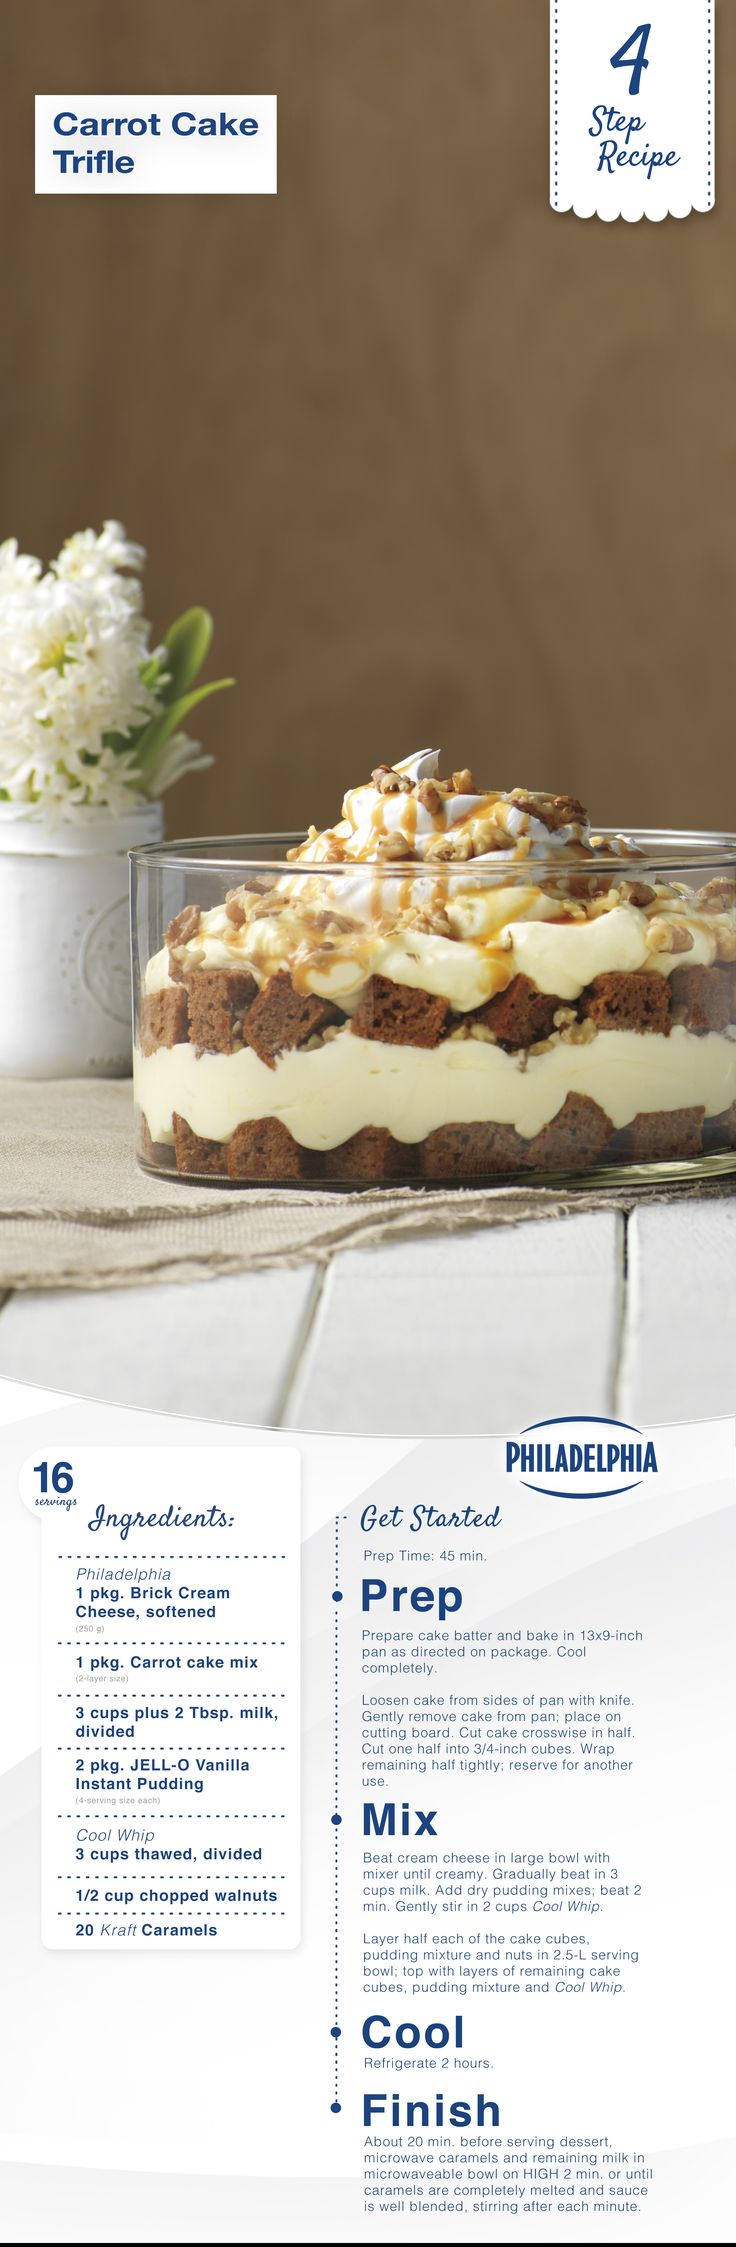 Carrot Cake Trifle with Philly cream cheese